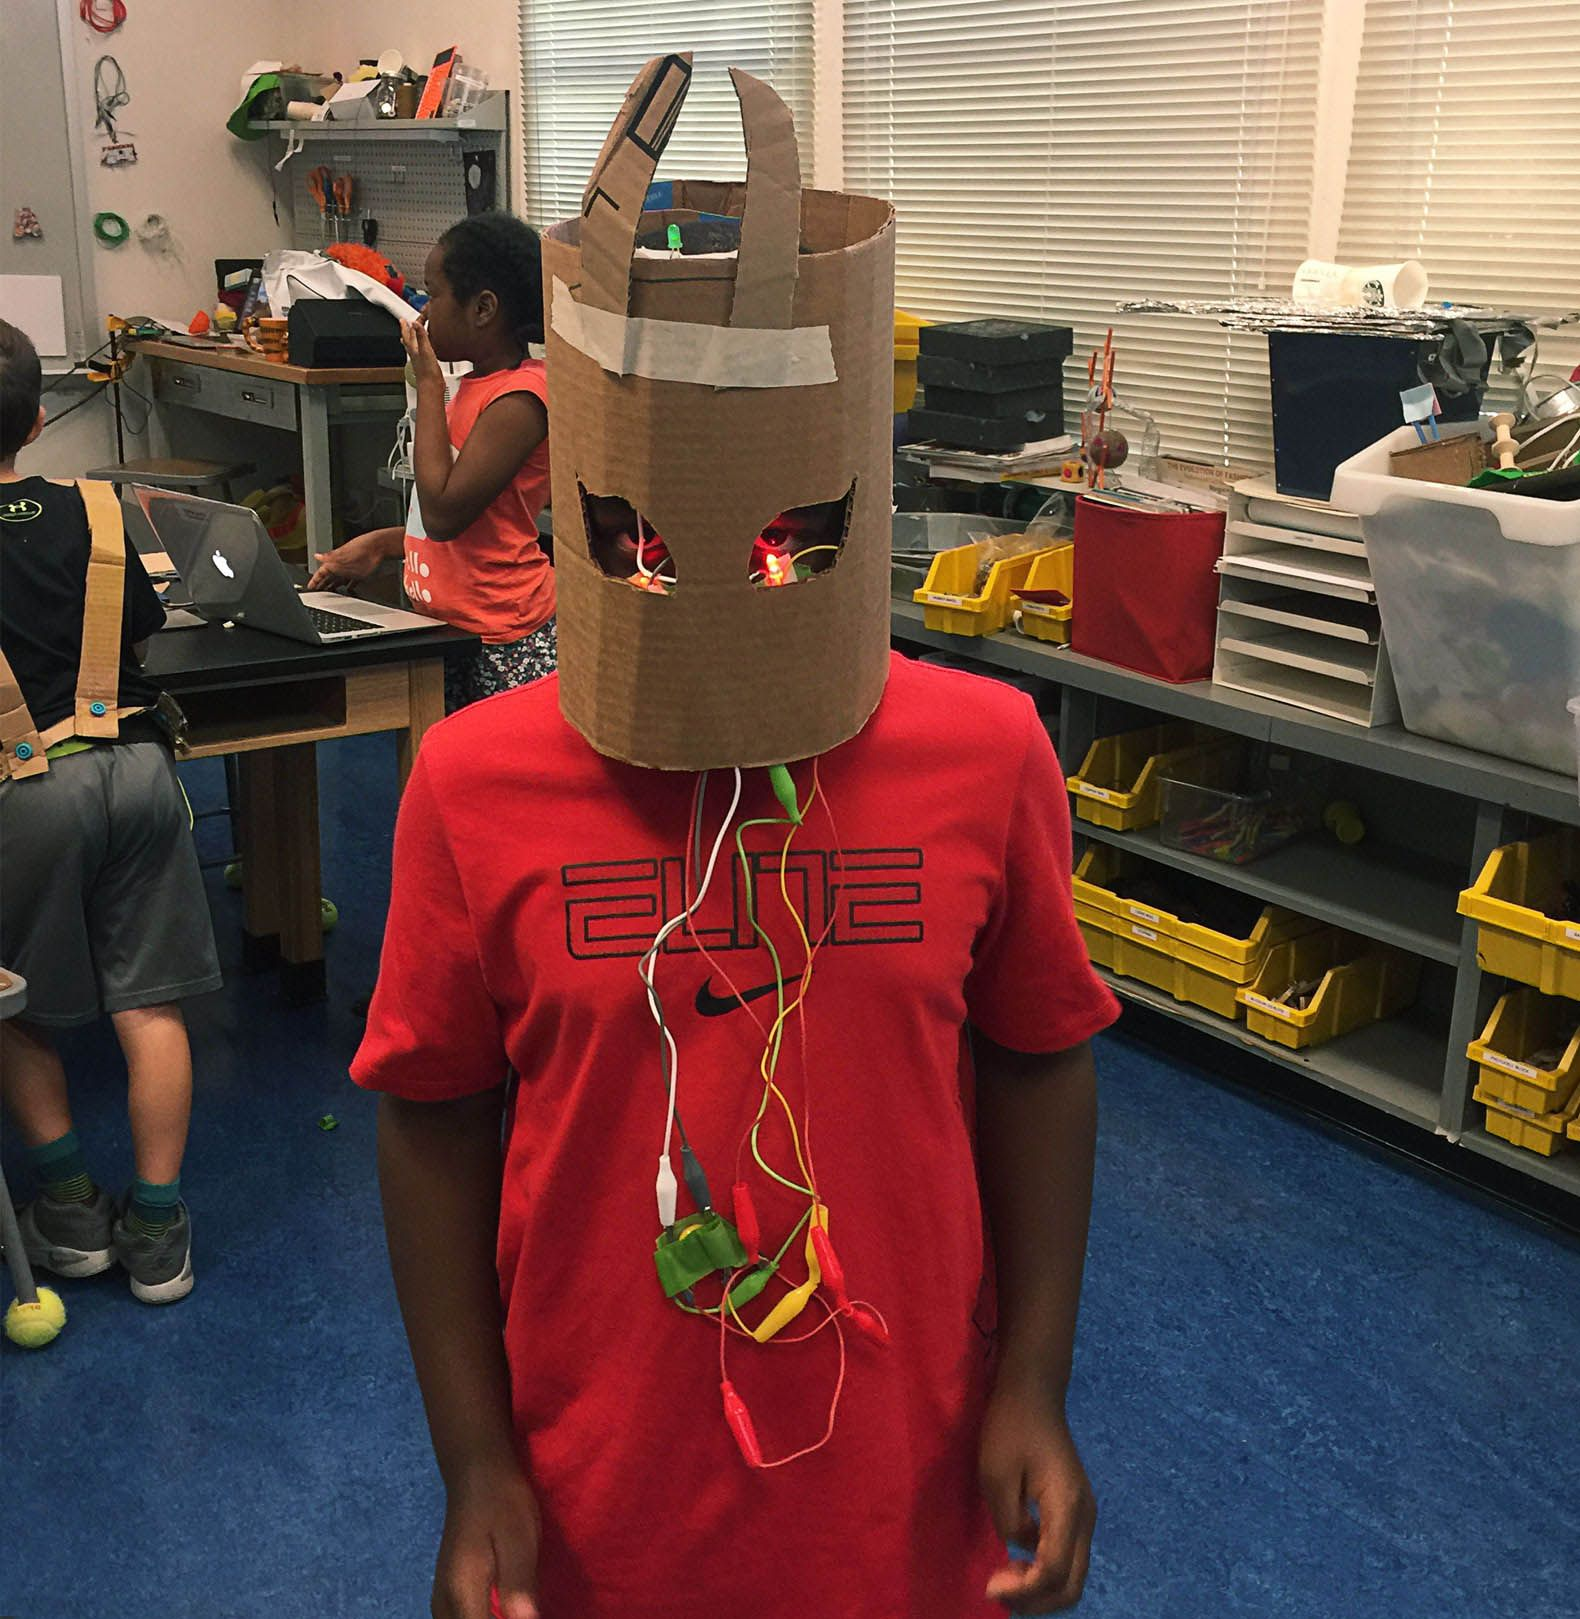 One of the author's students tries on a helmet.